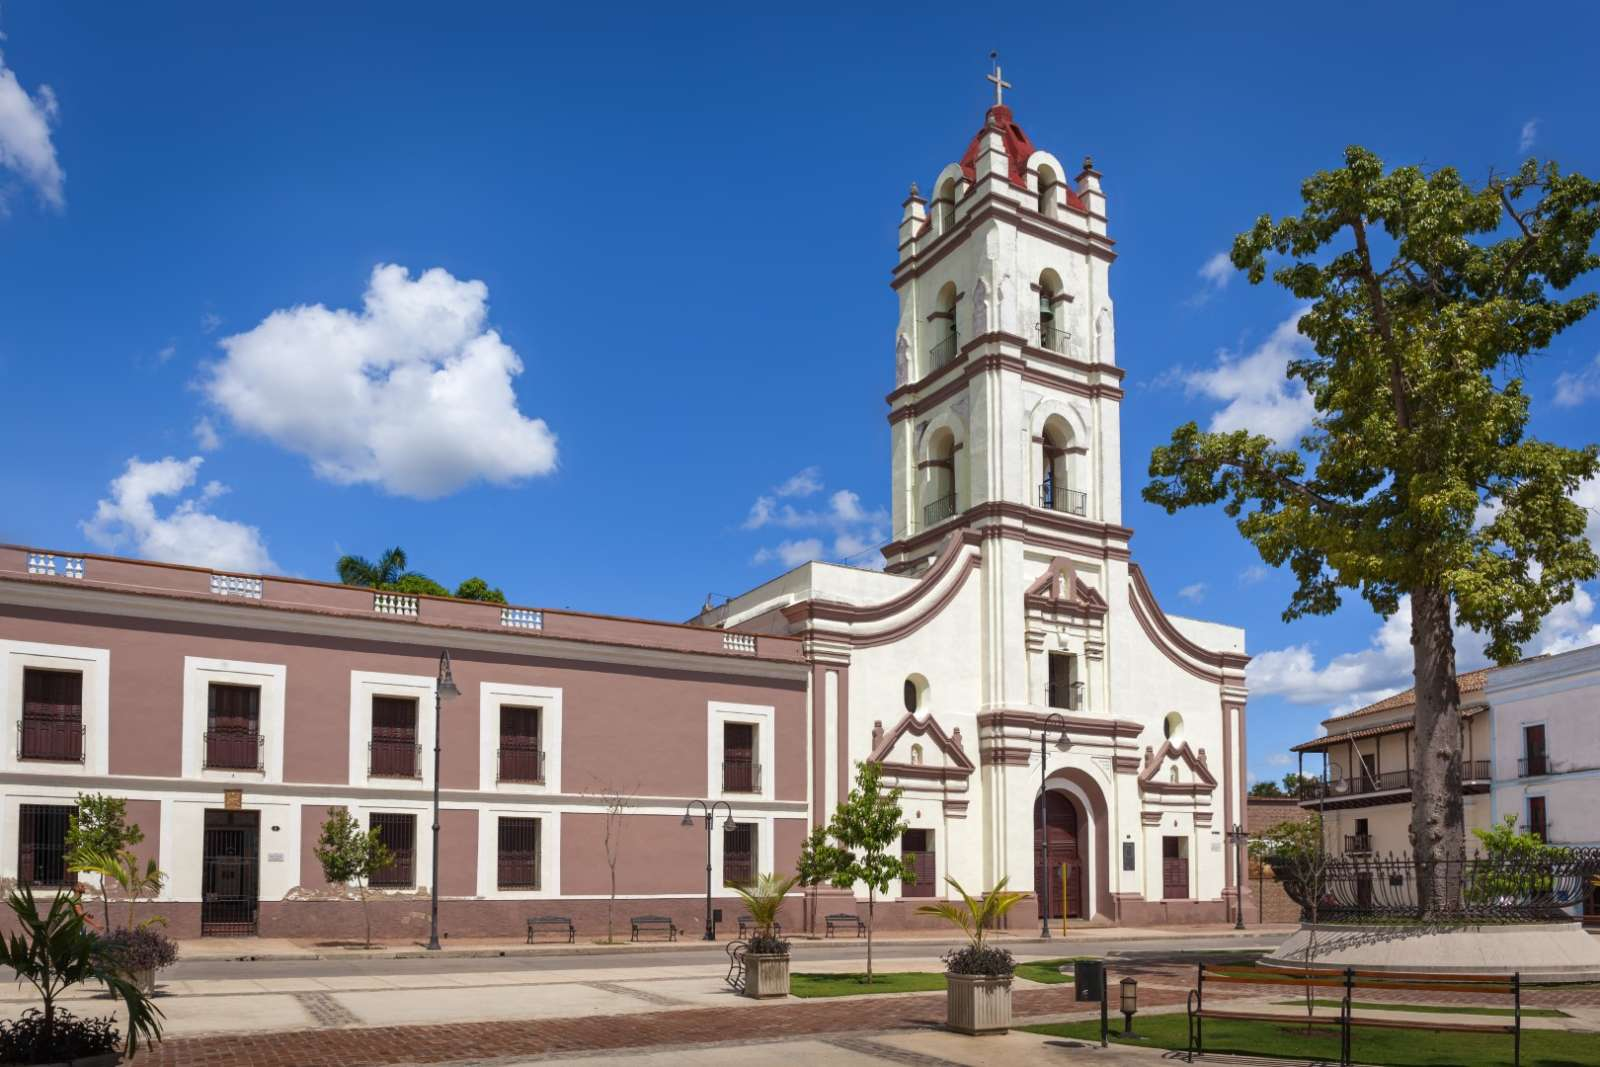 The church of Nuestra Senora de la Merced in Camaguey, Cuba